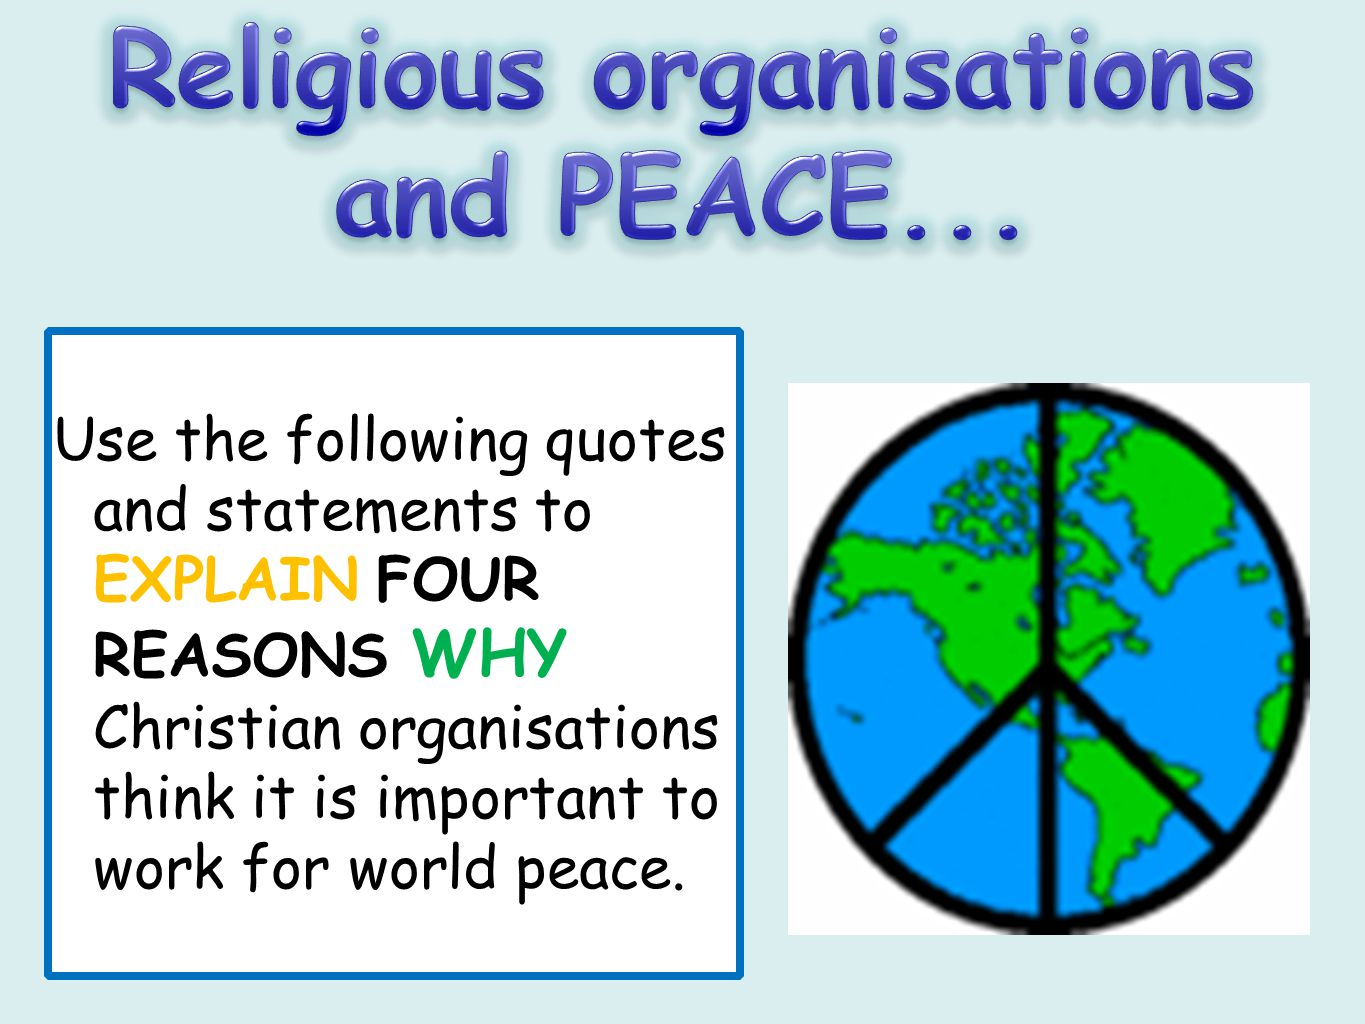 Religious organisations and PEACE...